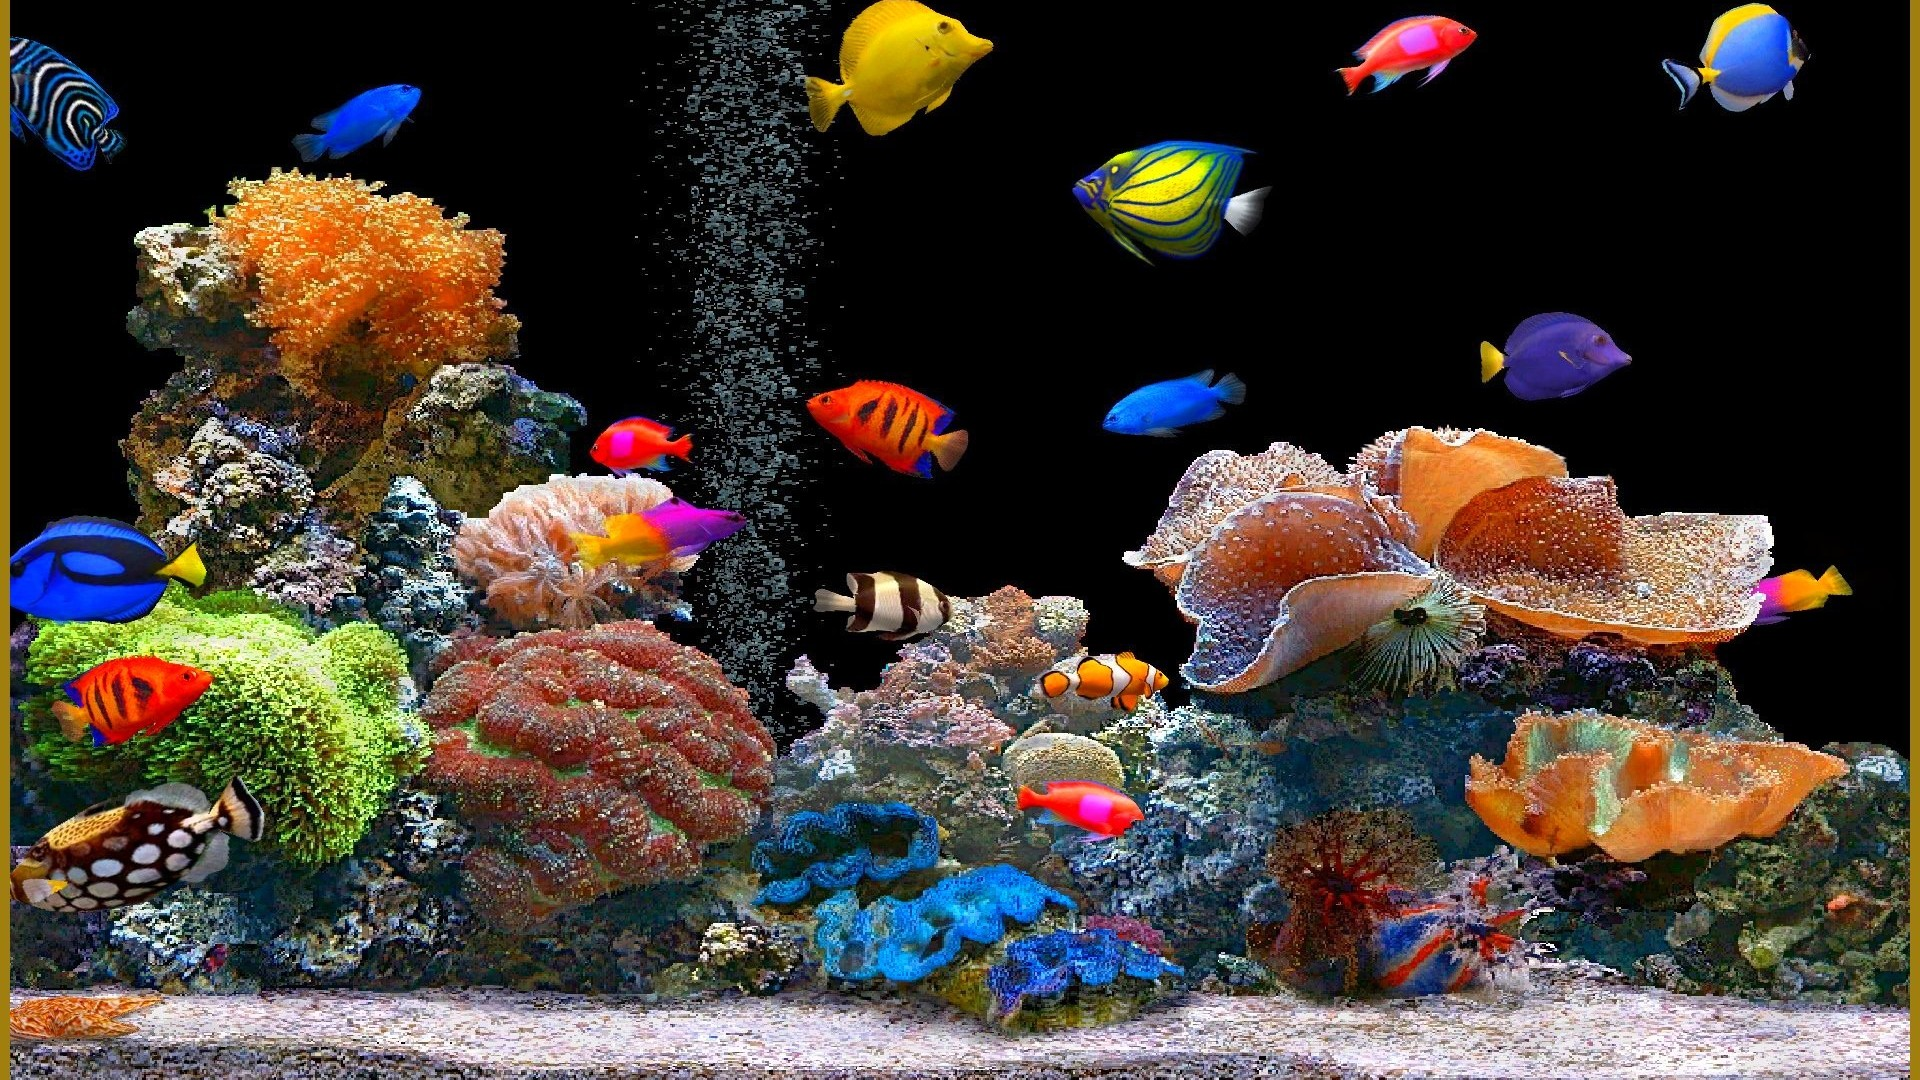 Desktop Wallpaper Fish for Windows 81 All for Windows 10 1920x1080